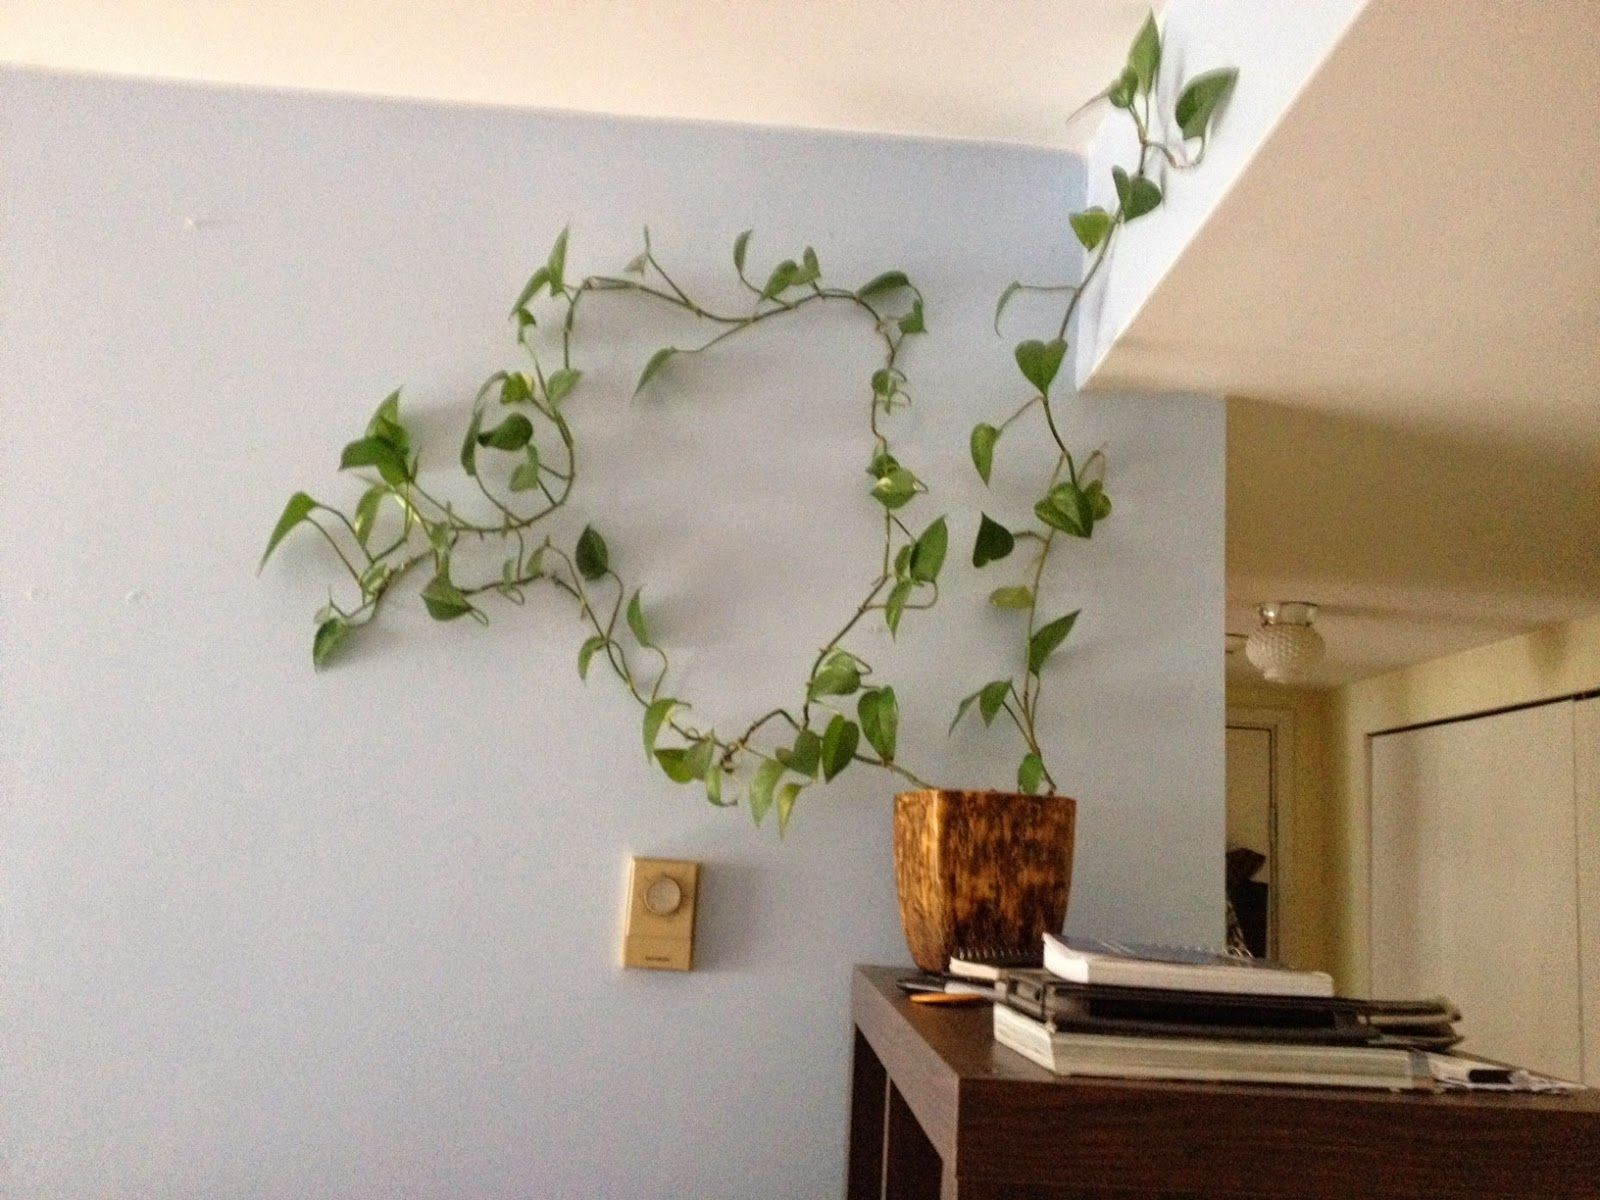 Eye Catching Indoor Climbing Plants | Ideas for the House ... on common vine cactus, common houseplants green, most common flowering houseplants, common houseplant names, common poisonous houseplants, common houseplants philodendron, common vine flowers, common houseplants good in shade, common palm houseplants, common plants, common vine weeds, common succulent houseplants, common houseplants care of,